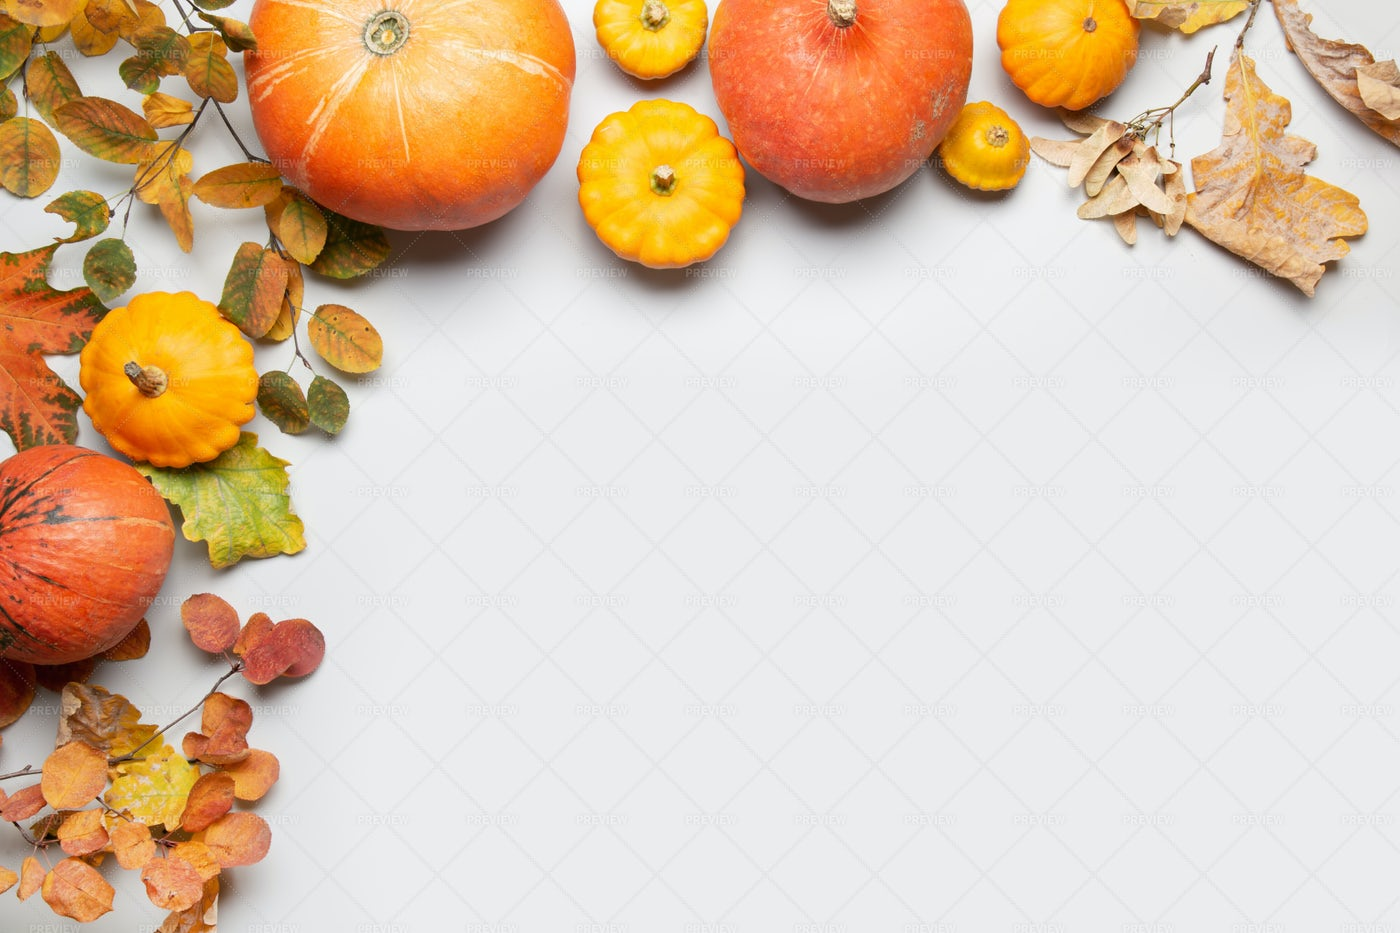 Frame Of Pumpkins And Leaves: Stock Photos